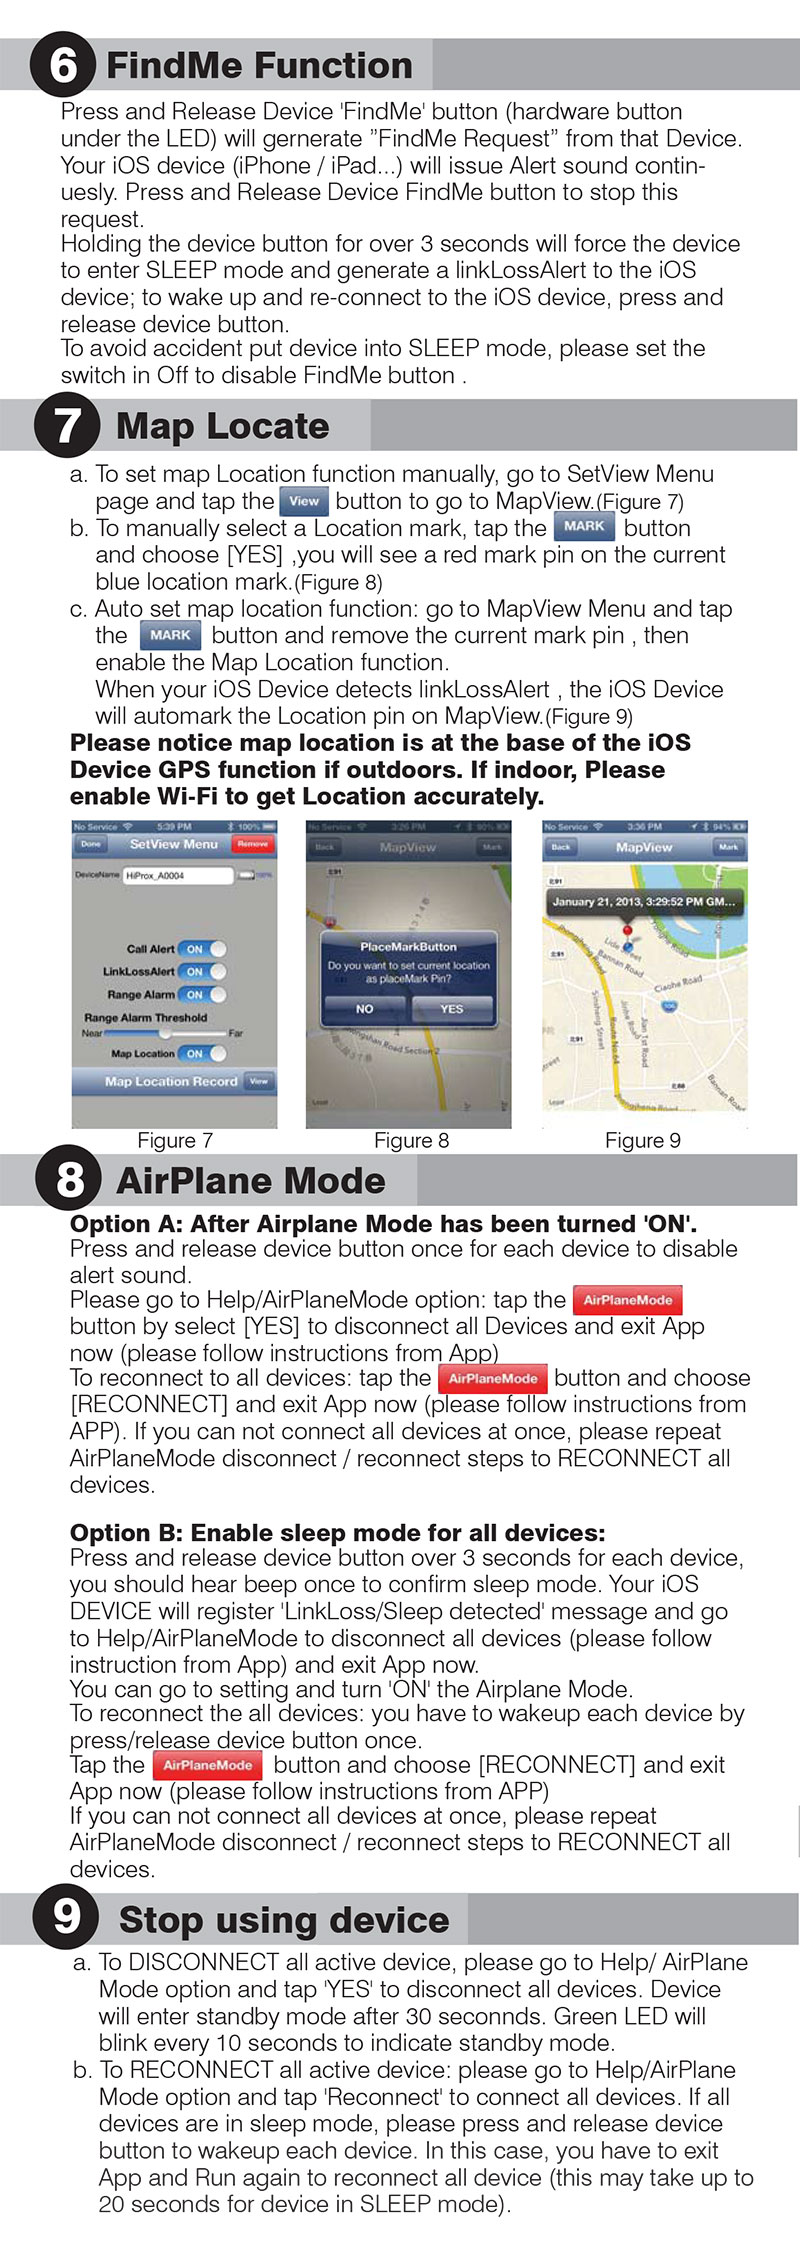 Q219147 moreover China E2 80 93Democratic Republic of the Congo relations moreover Optical Fiber Inspections Visual Fault Adaptor Vfl Adp 599738 besides New Wallet Purse IPhone Reminder Tracker Anti Theft Lost Alarm Locator Bluetooth Manufacturers furthermore Q115256. on the locator map of taiwan roc